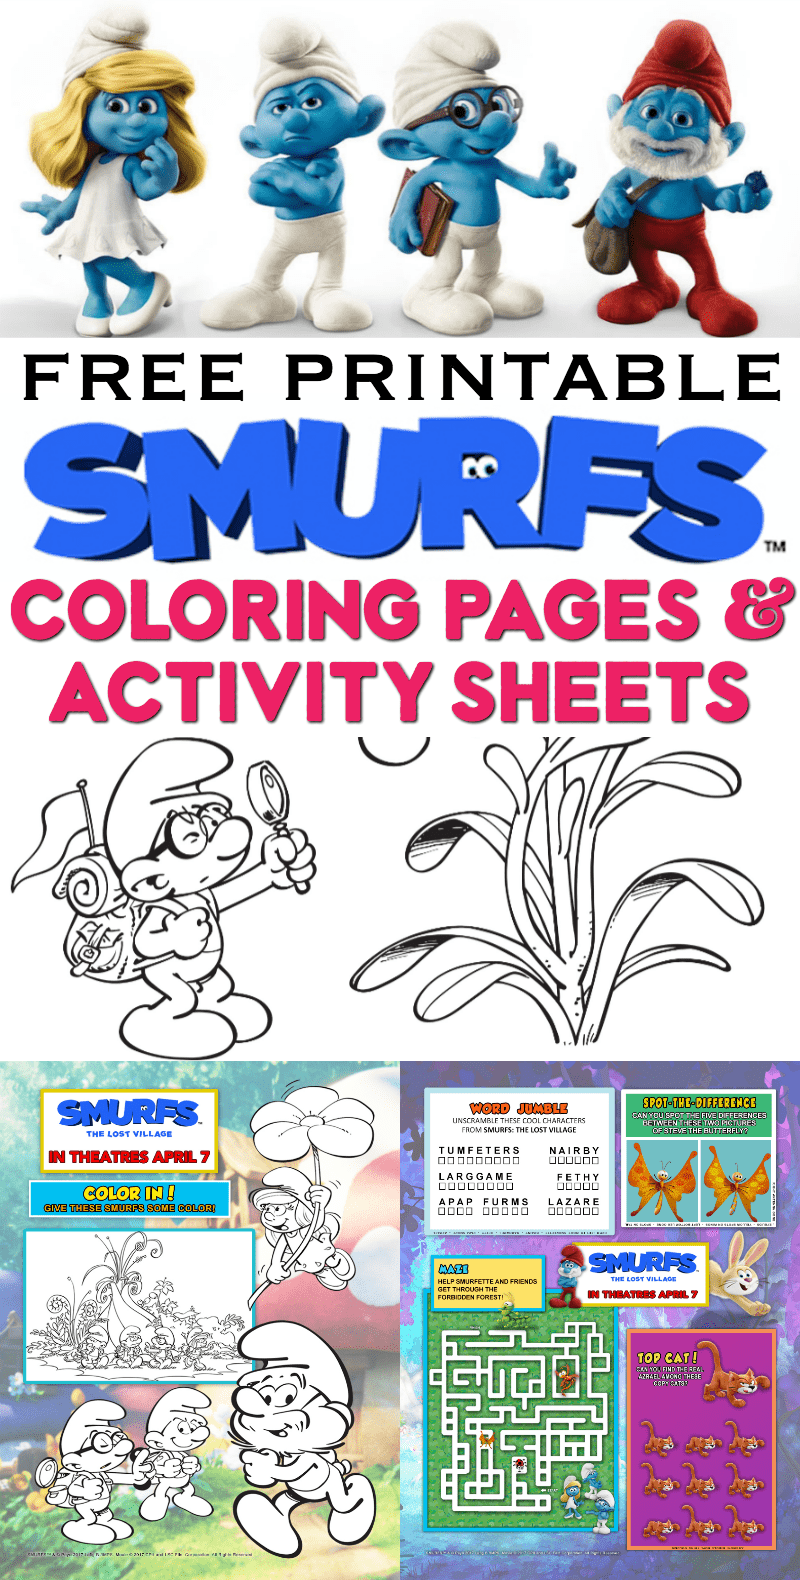 Free Printable Smurfs Coloring